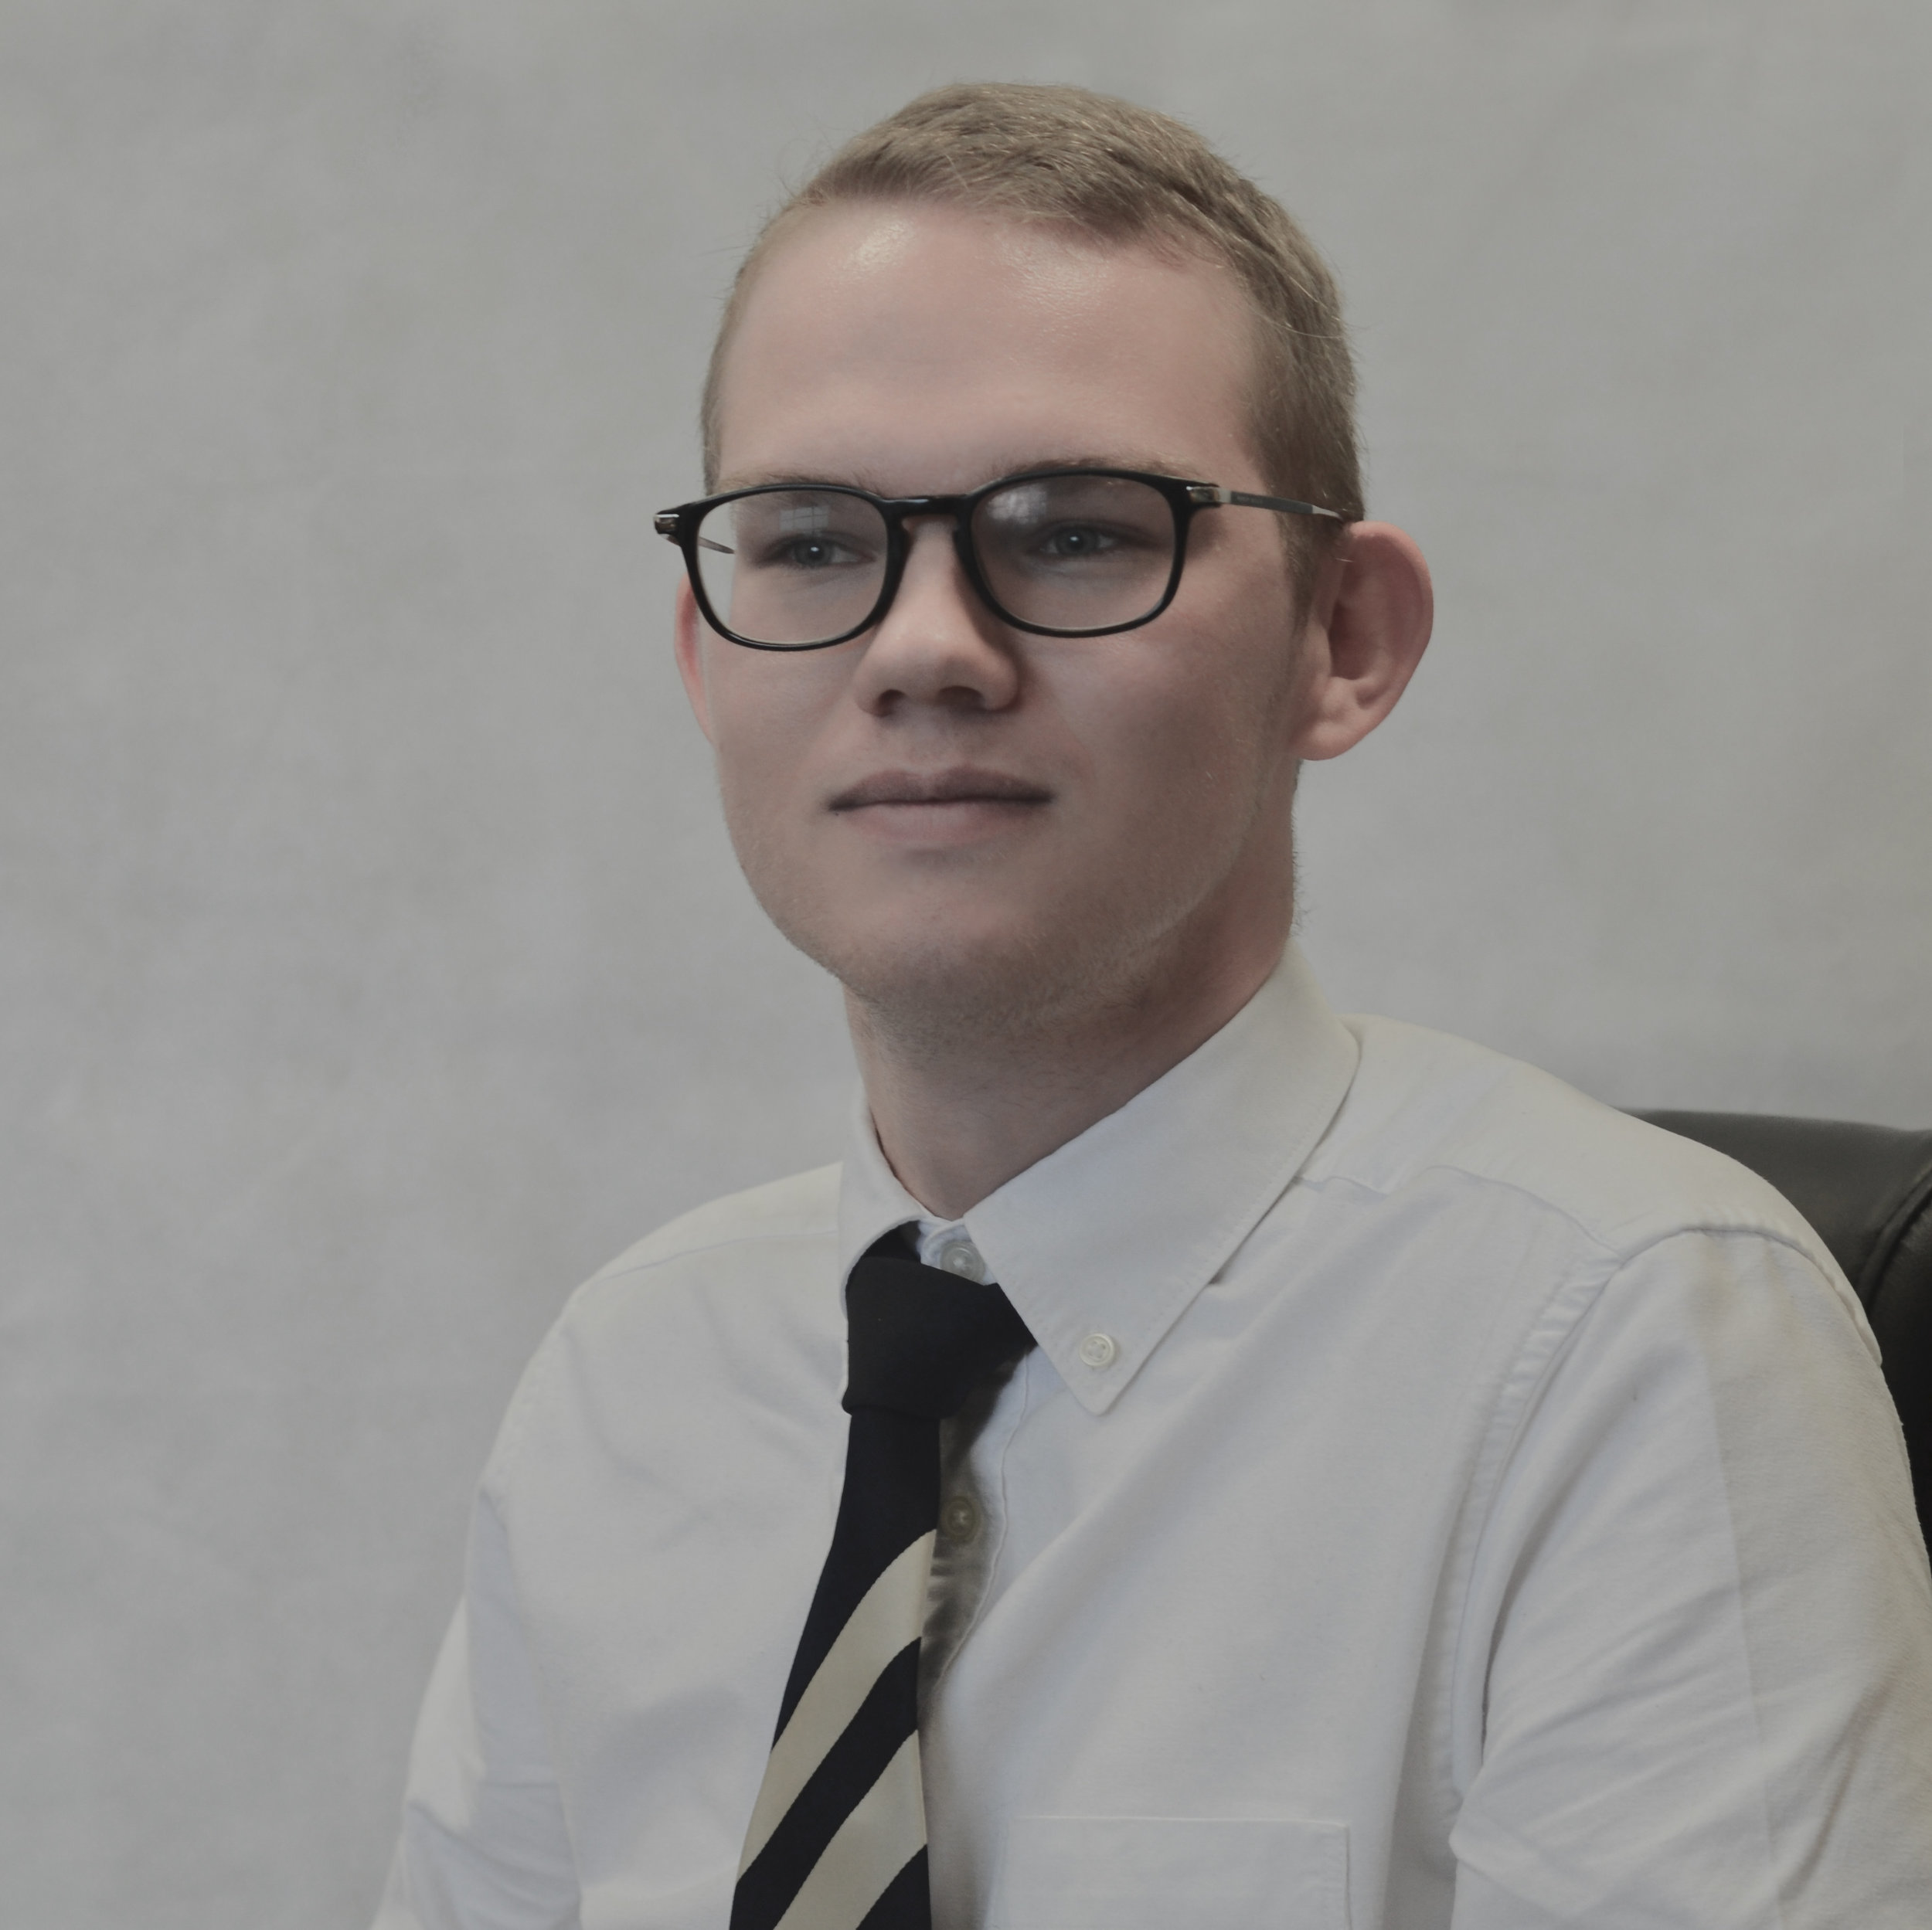 Dominic Matthews   Reinsurance Technician  dominic@globalre-group.com  07817 922 333 or 01424 858 191